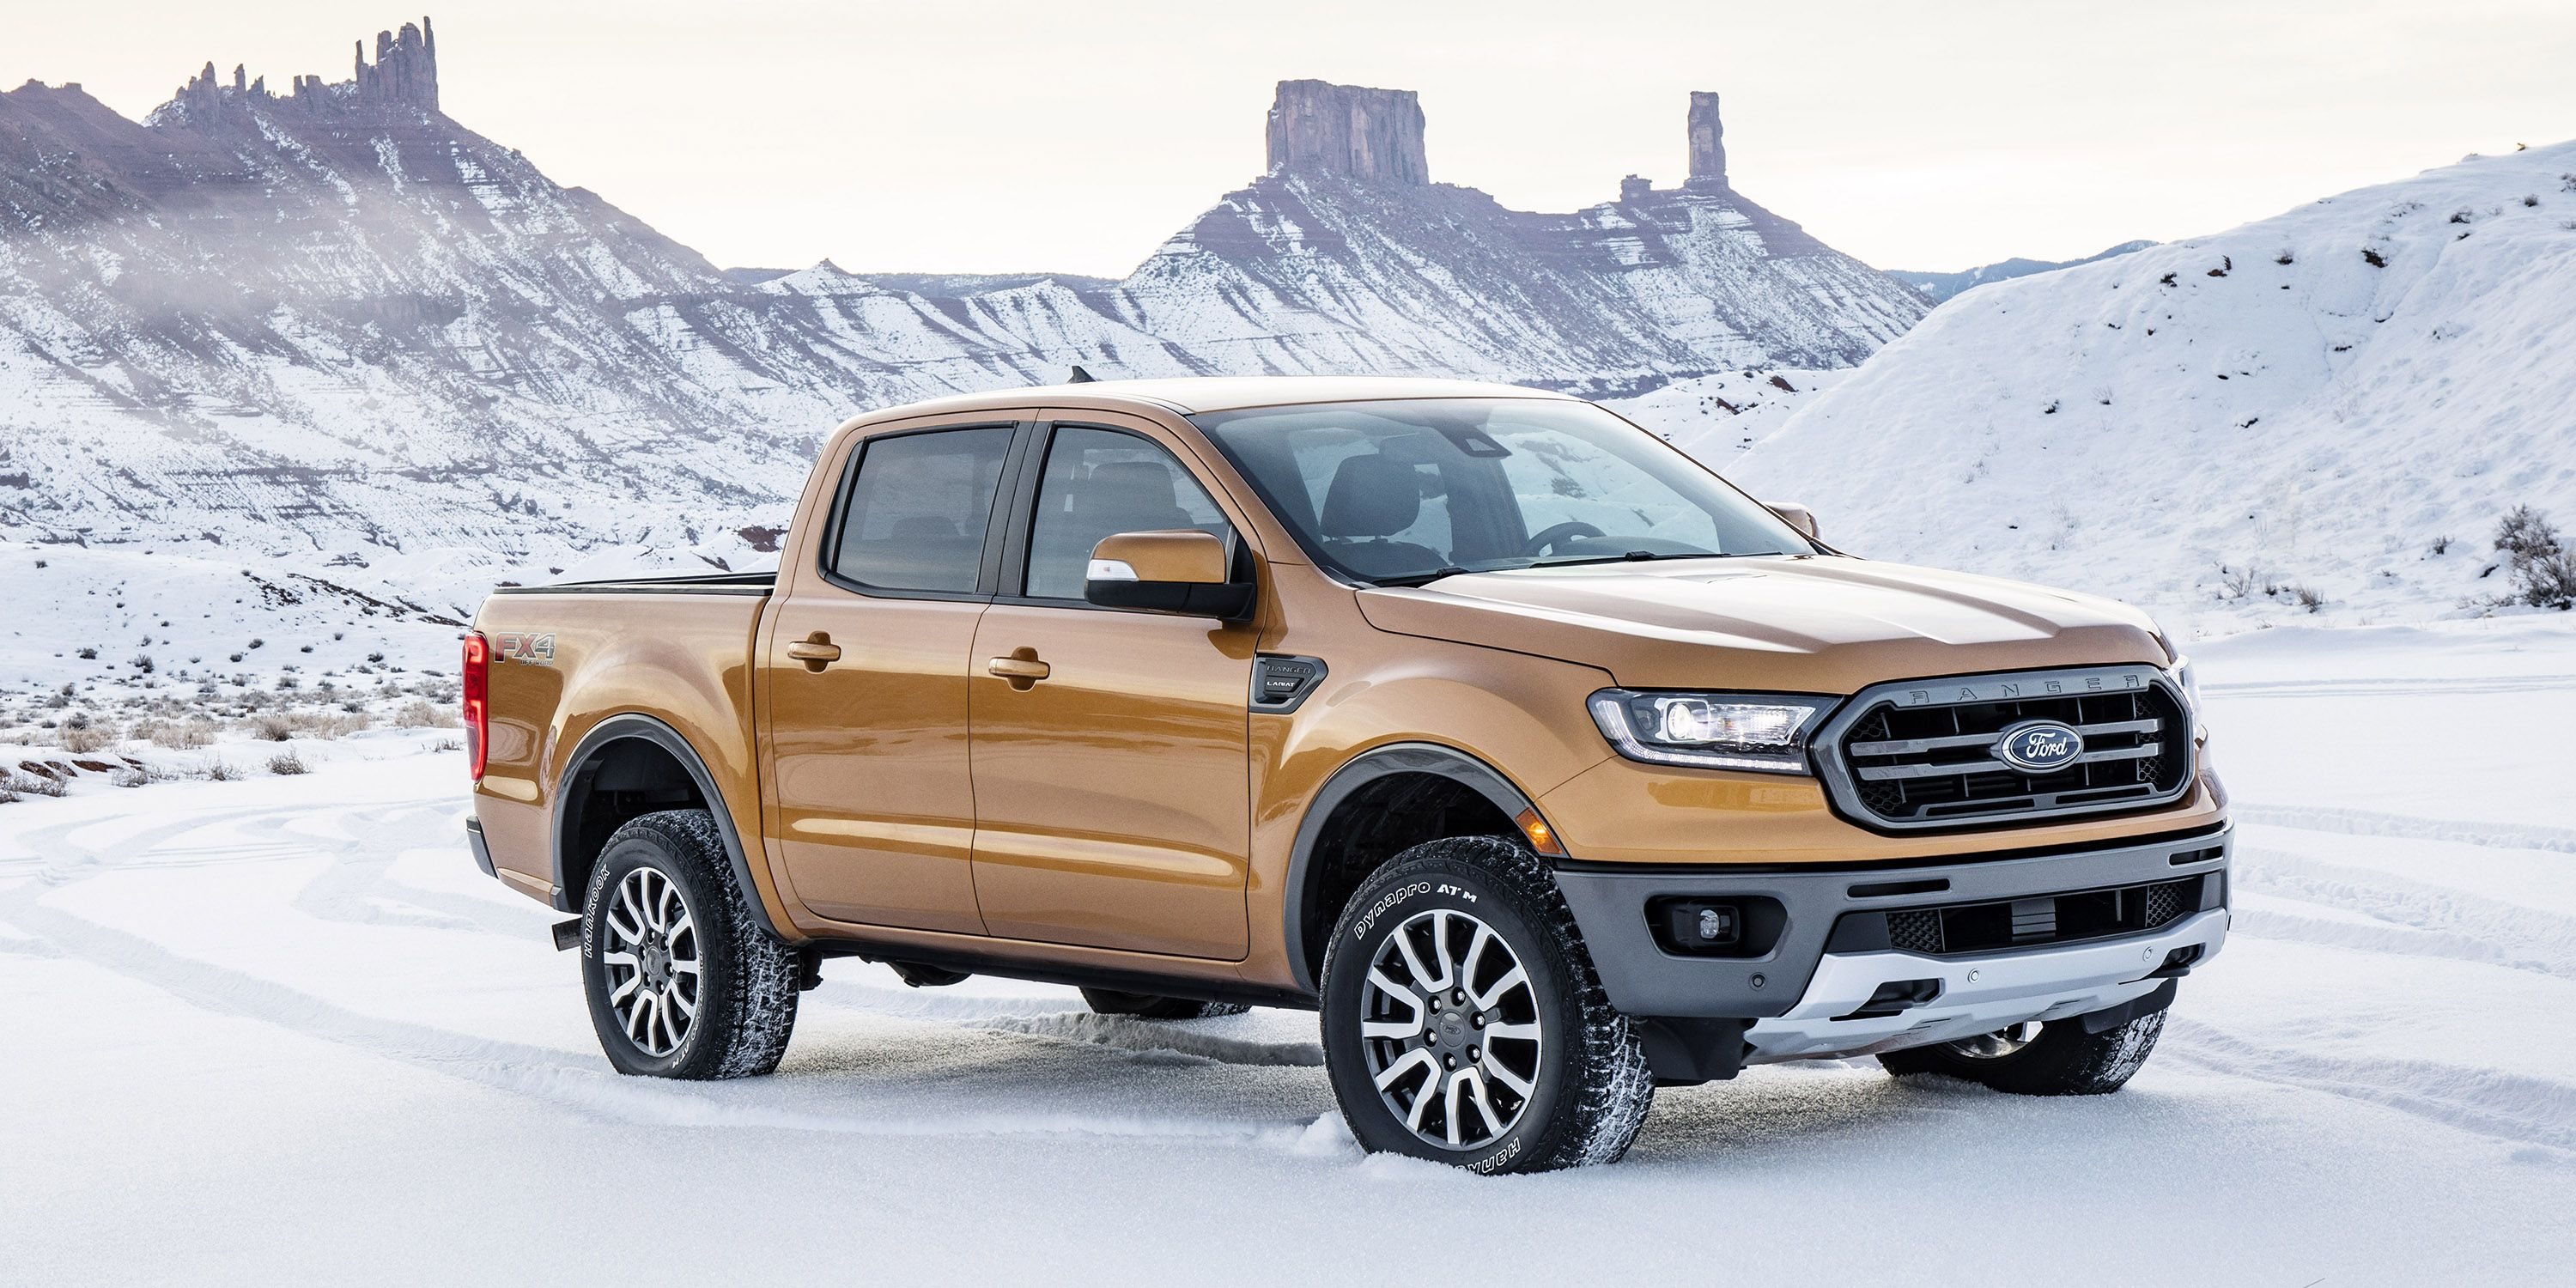 2019 Ford Ranger Specs Release Date Price New Ford Ranger Revealed